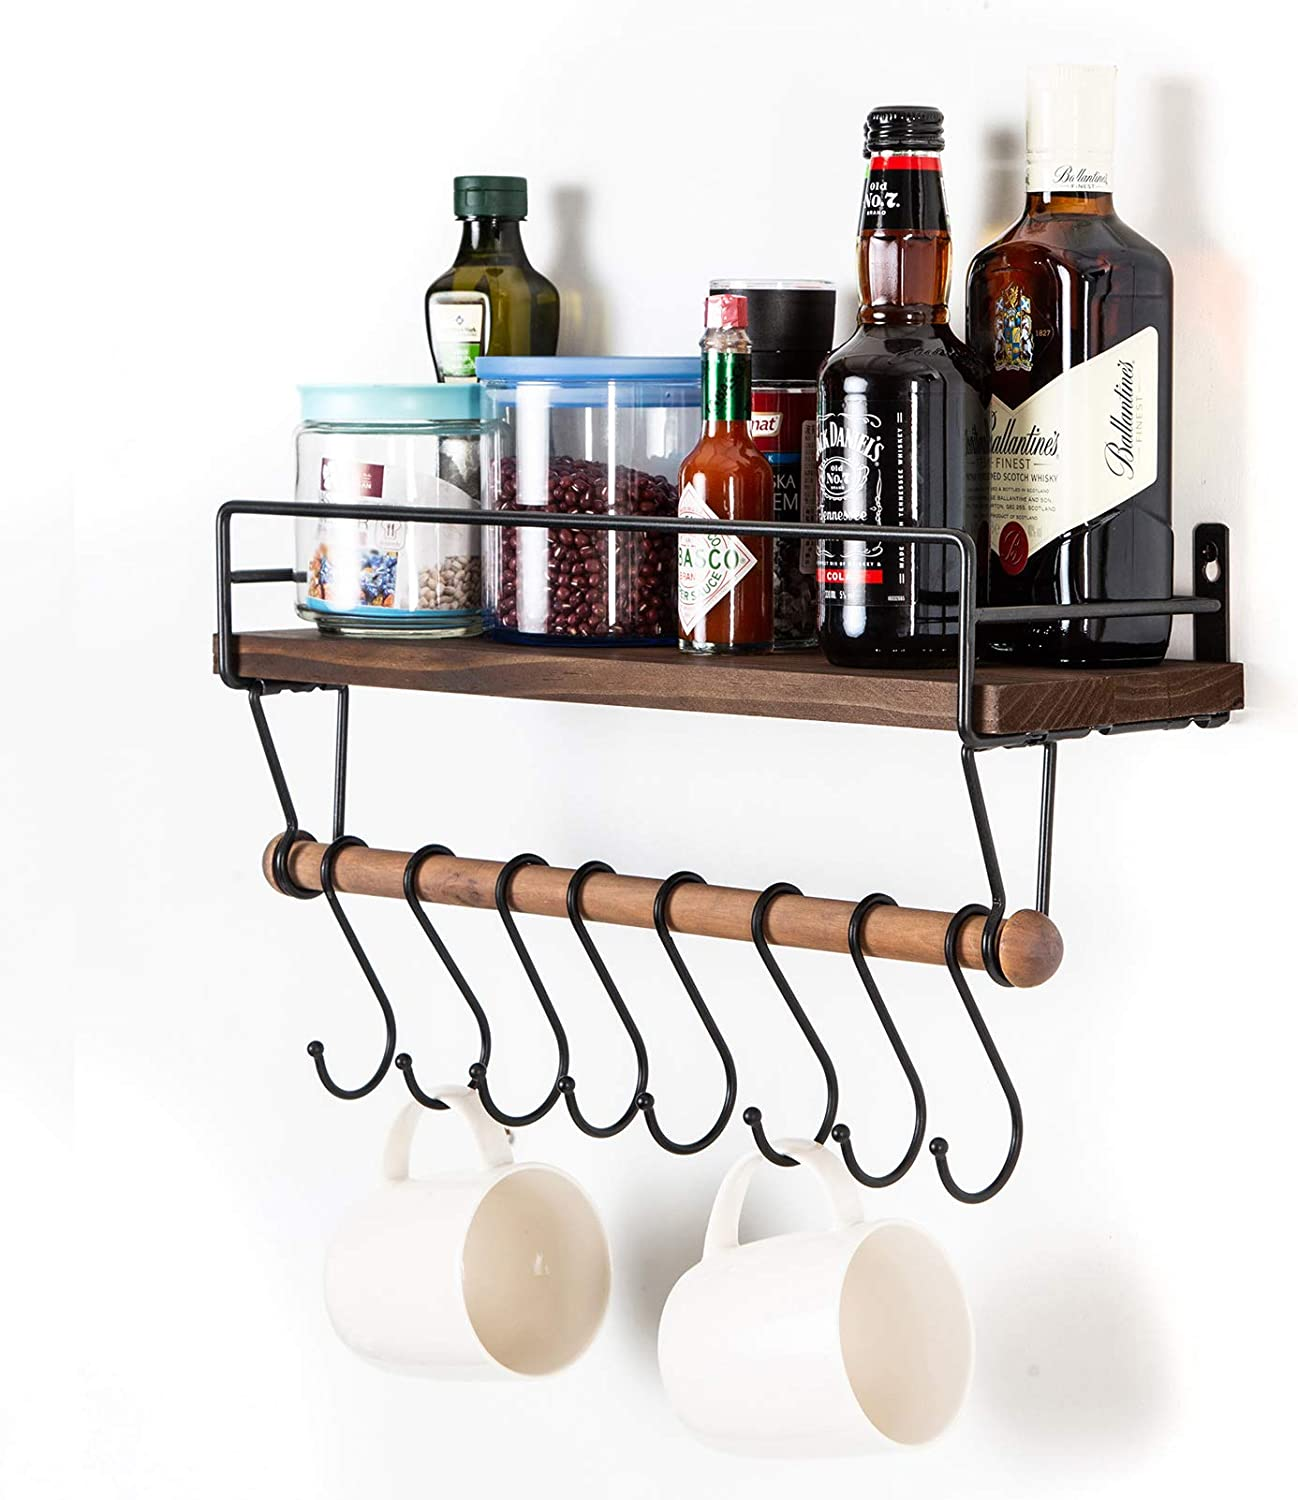 SODUKU Floating Shelf Wall Shelf for Storage Rustic Wood Kitchen Spice Rack and Bathroom Shelf with Rail and Removable Towel Bar and 8 Hooks Brown